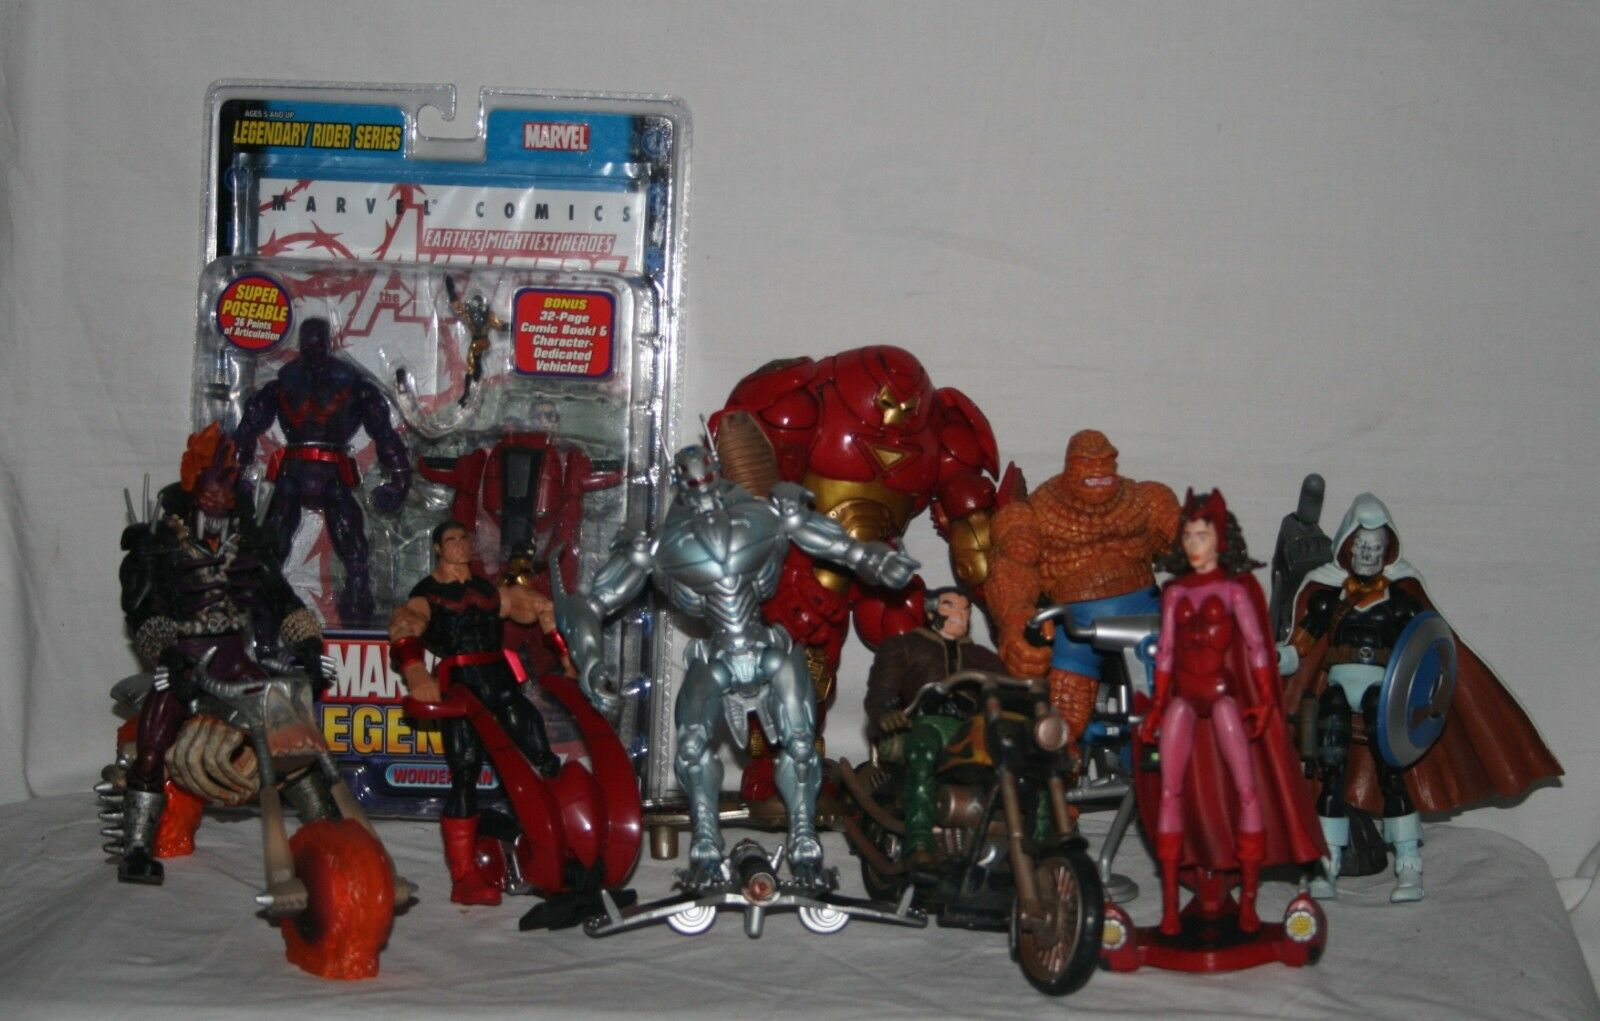 Marvel legends series 11 2005 legendary riders complete set regular and variants